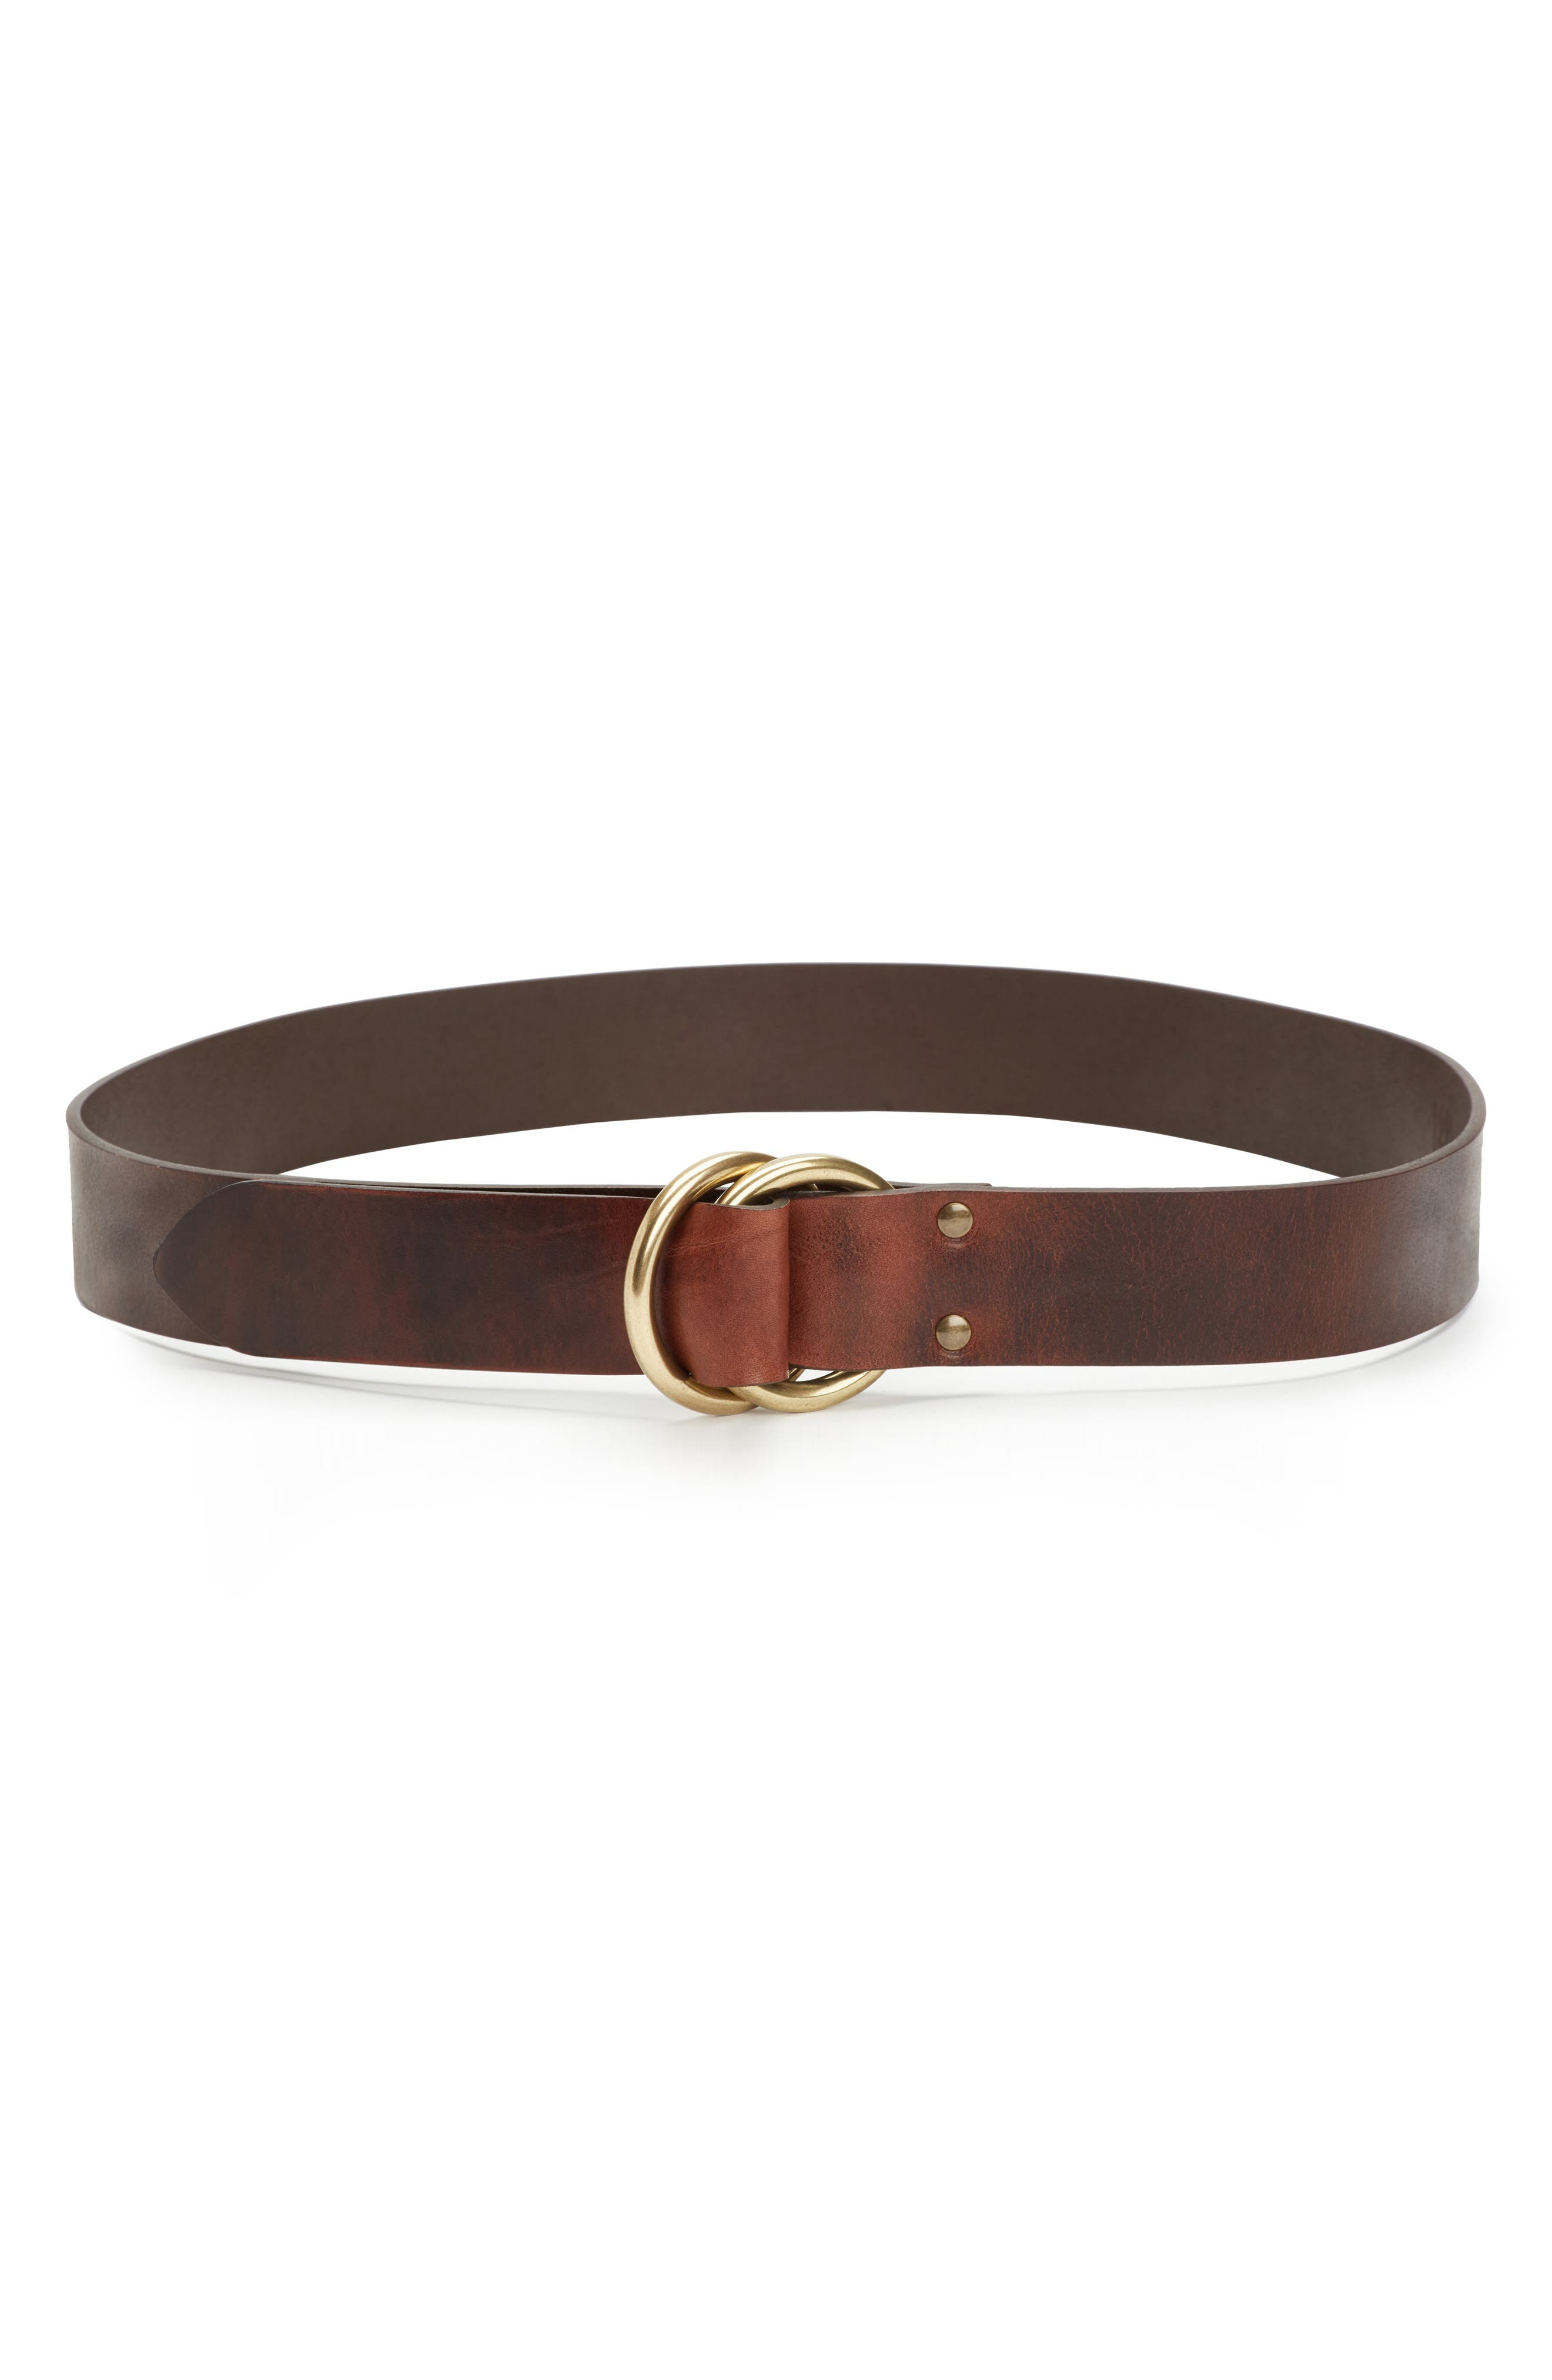 Harness Leather Belt,                             Main thumbnail 1, color,                             235